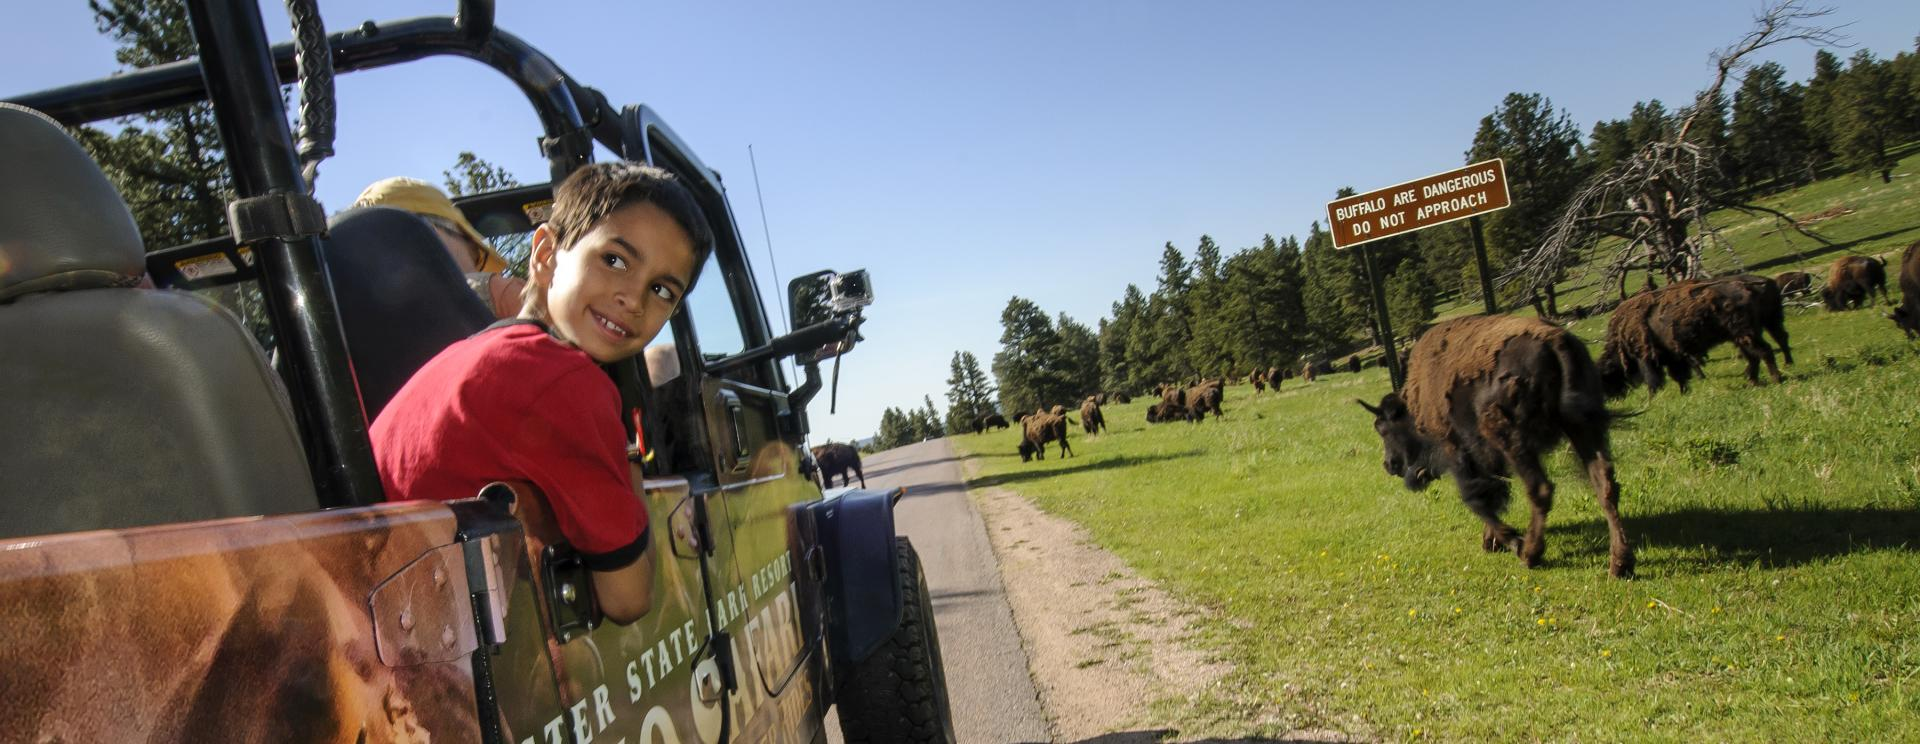 Top 7 Wildlife Experiences Perfect for Young Families in Custer State Park